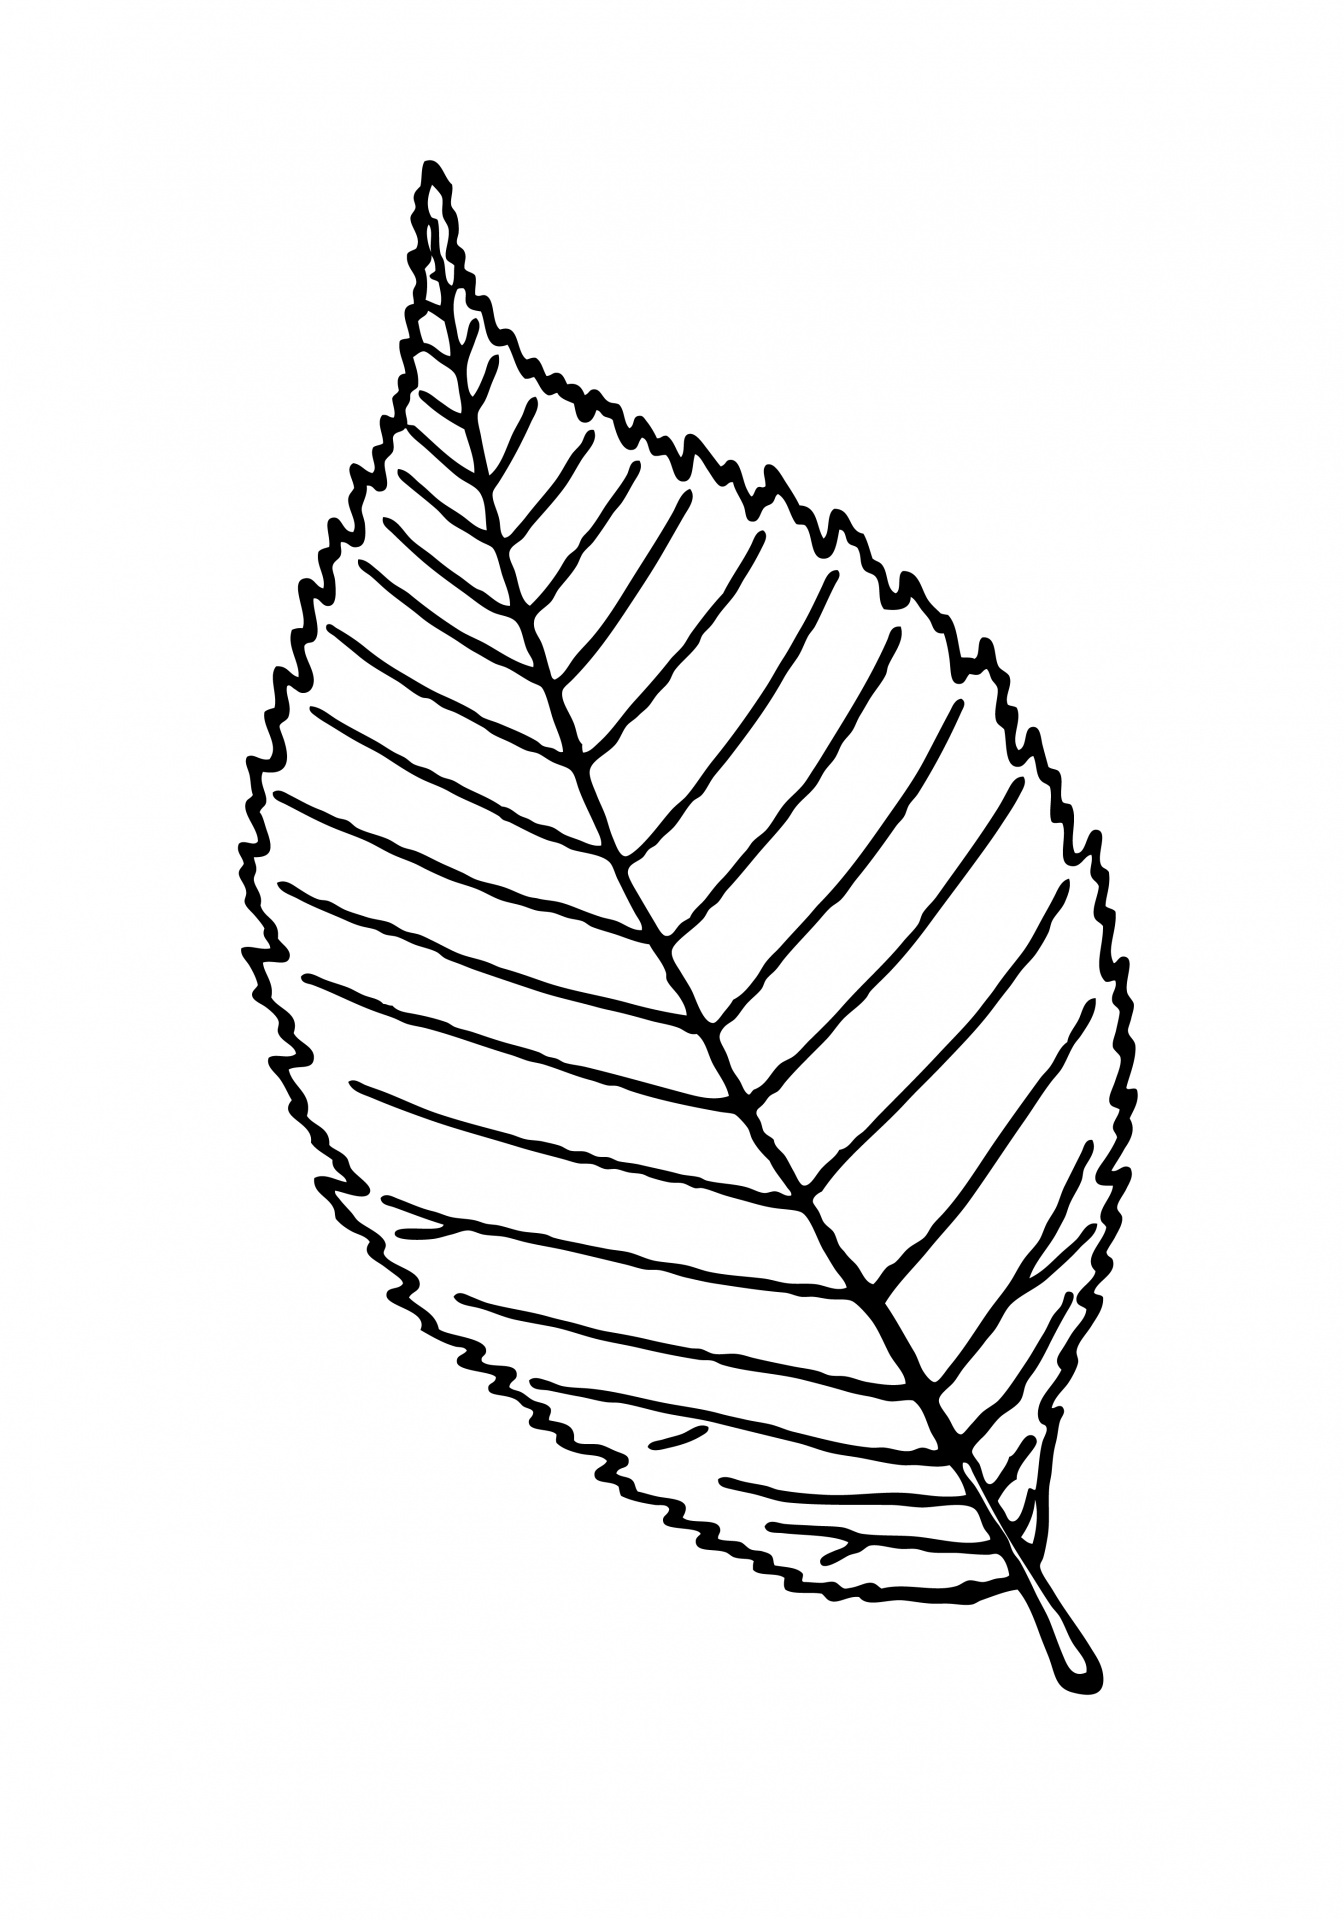 Leaf outline clipart illustration free